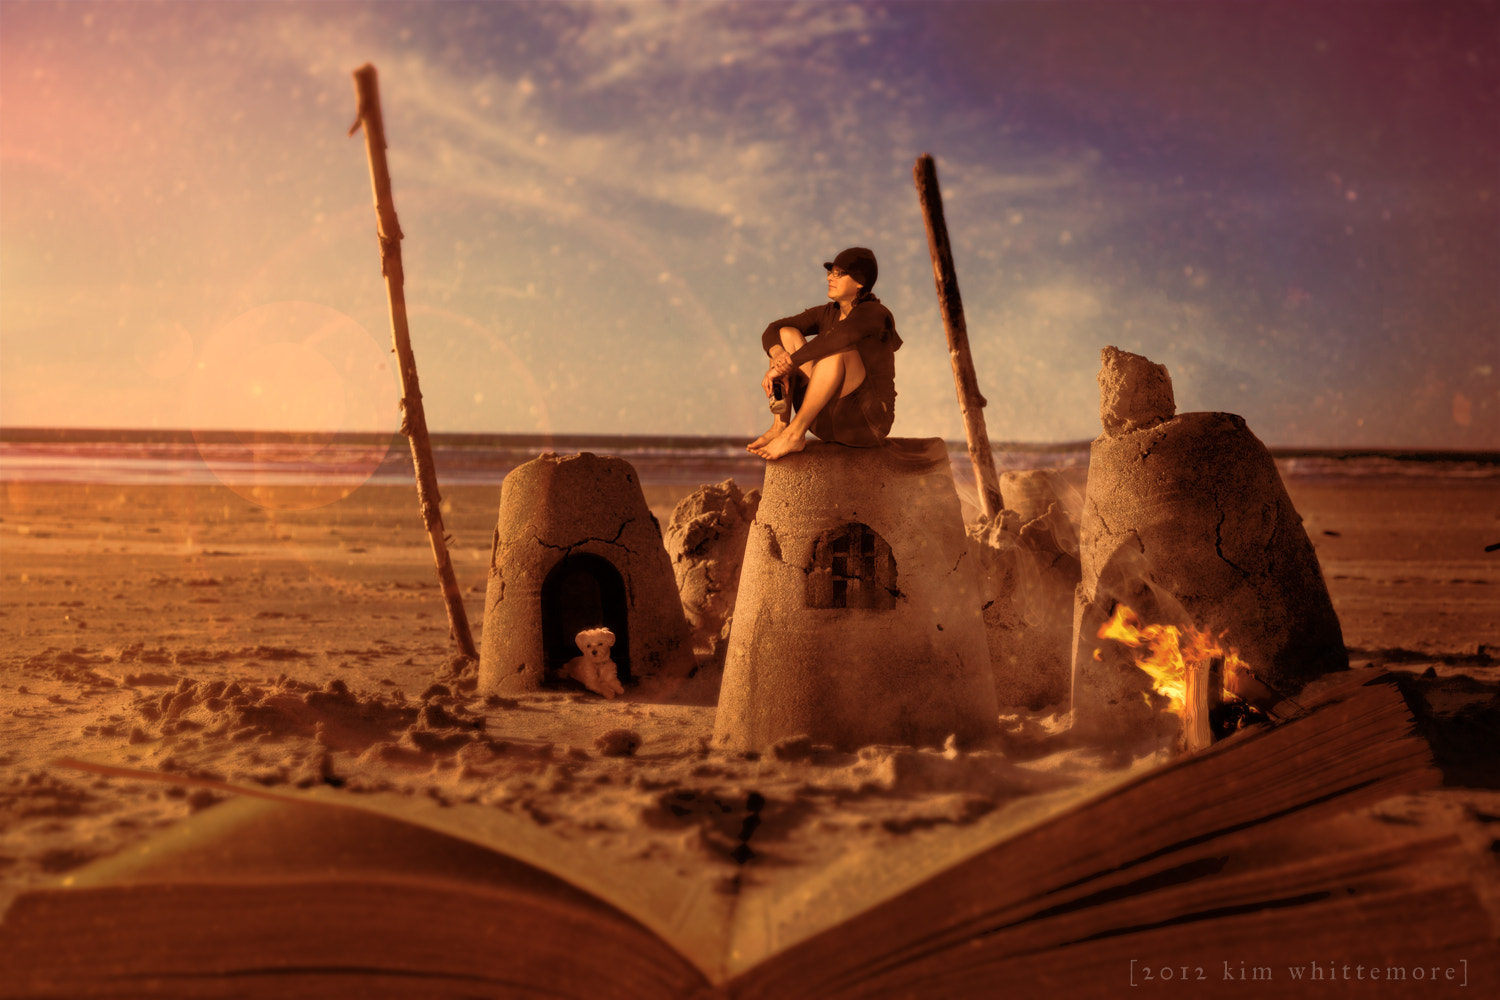 Photograph Sand Castle by Kim Whittemore on 500px